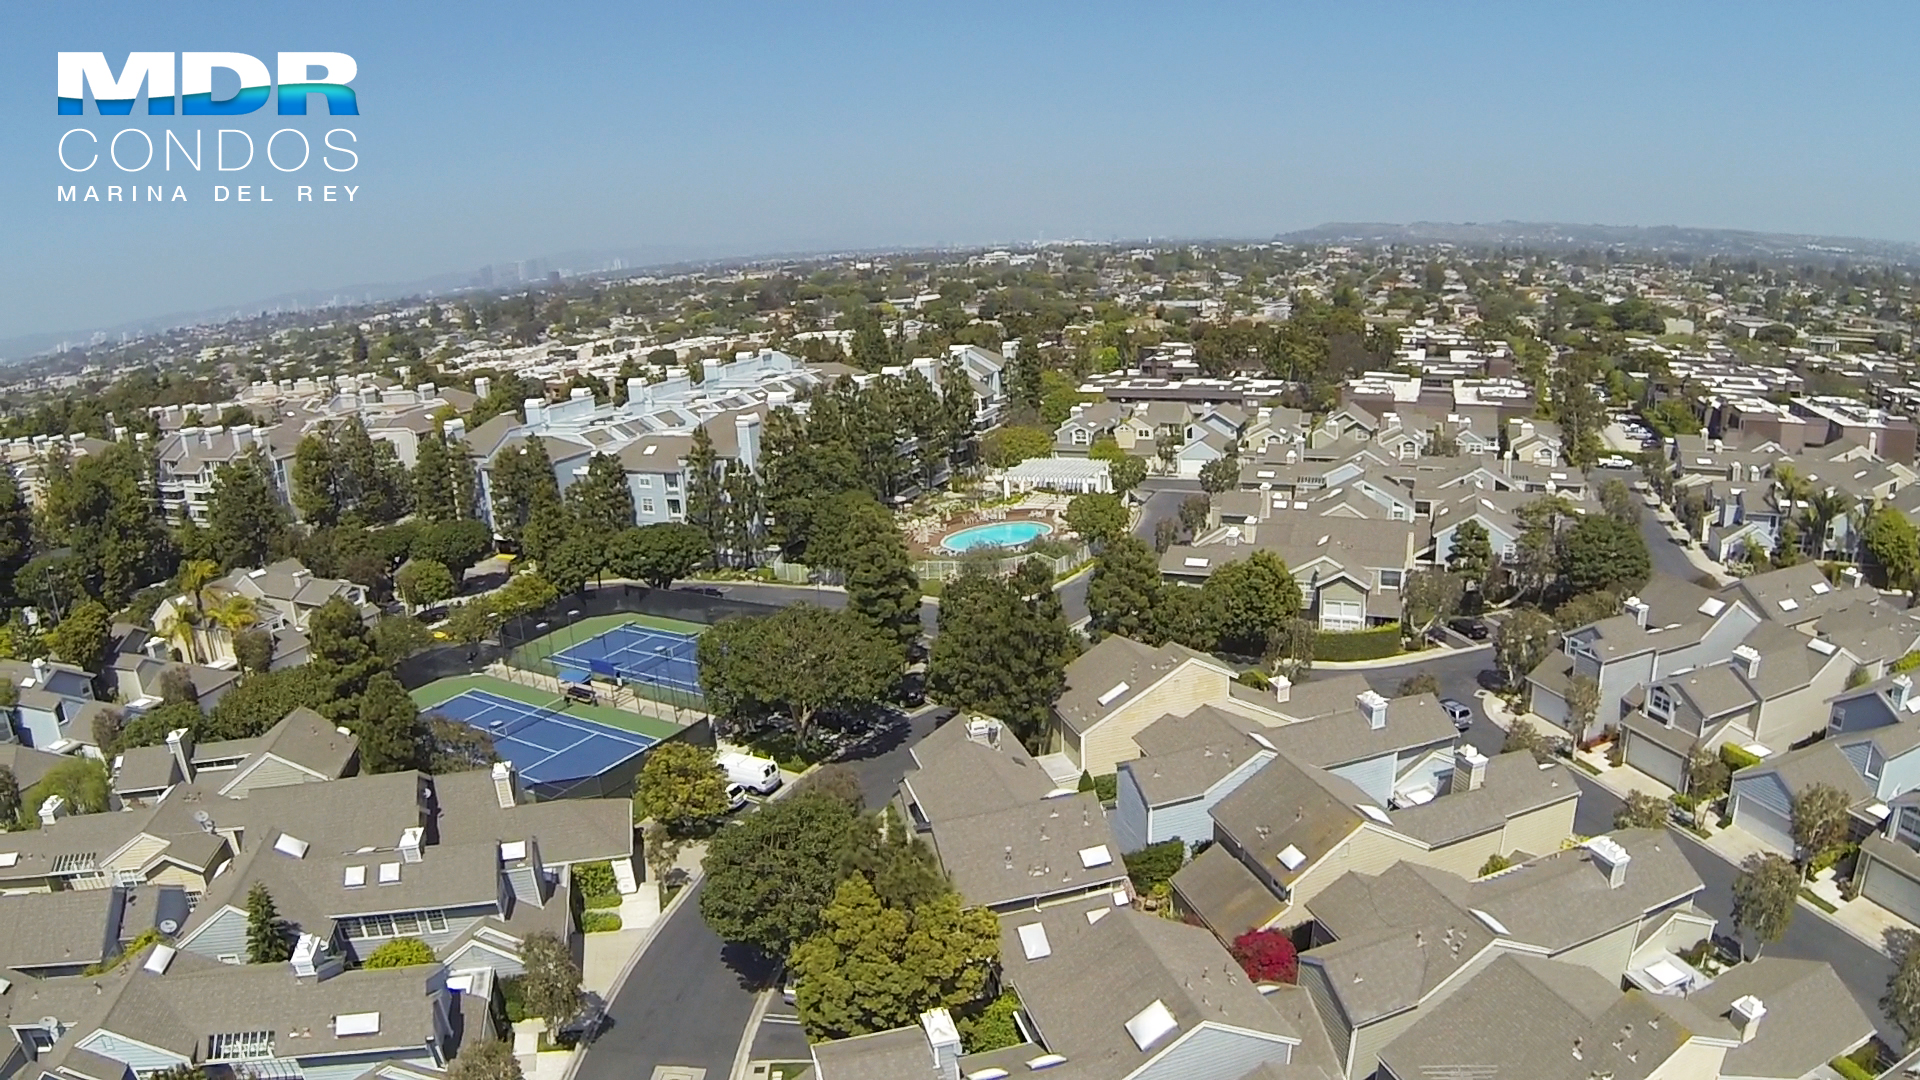 Townhomes for sale in marina del rey marina del rey condos for Houses for sale marina del rey